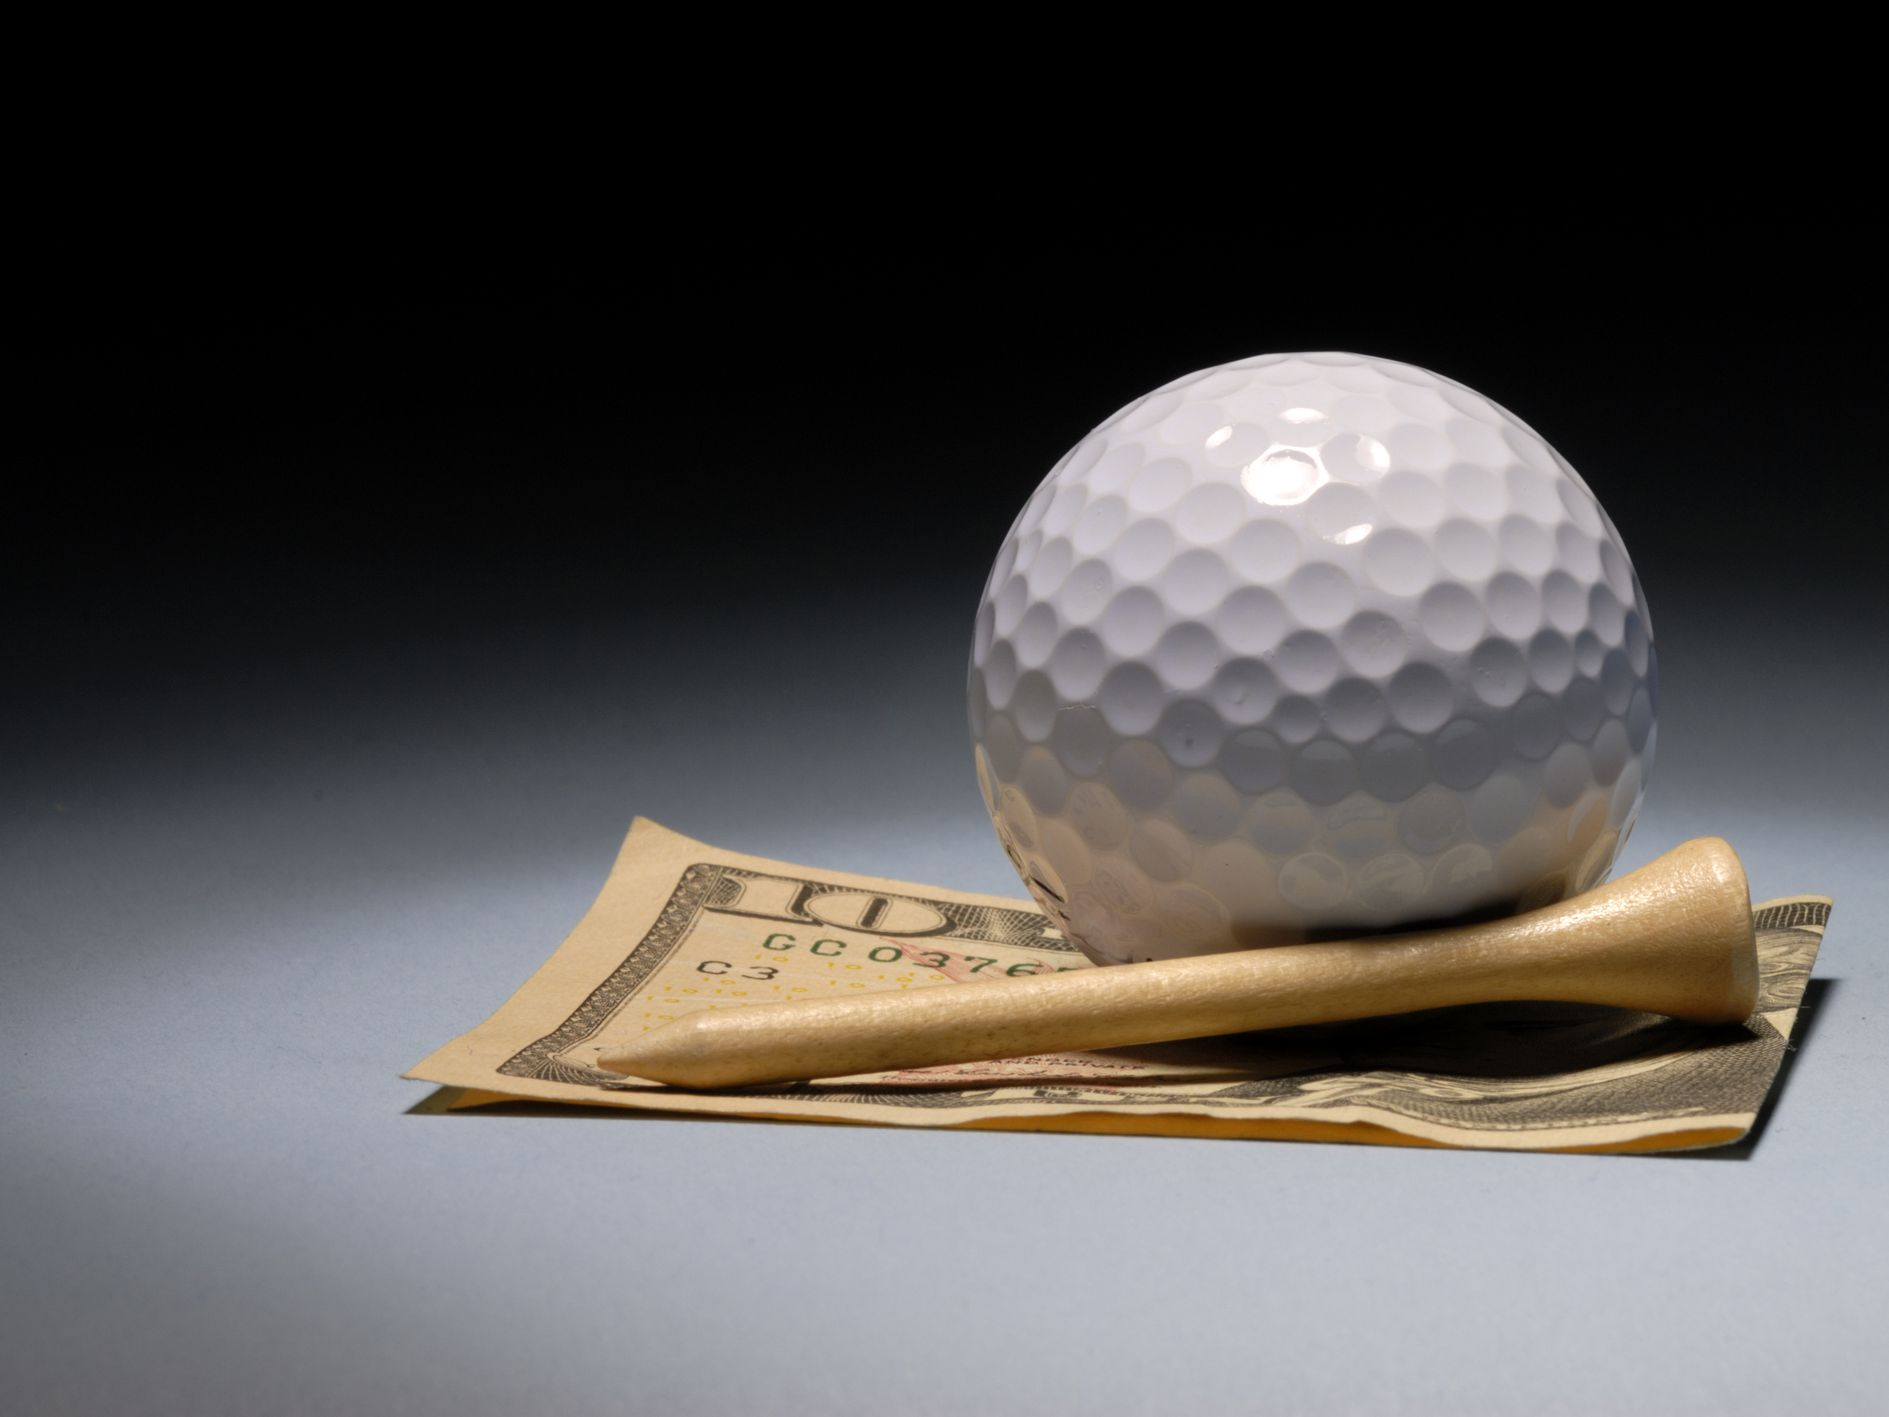 Different golf betting games poker bet365 cricket betting rates